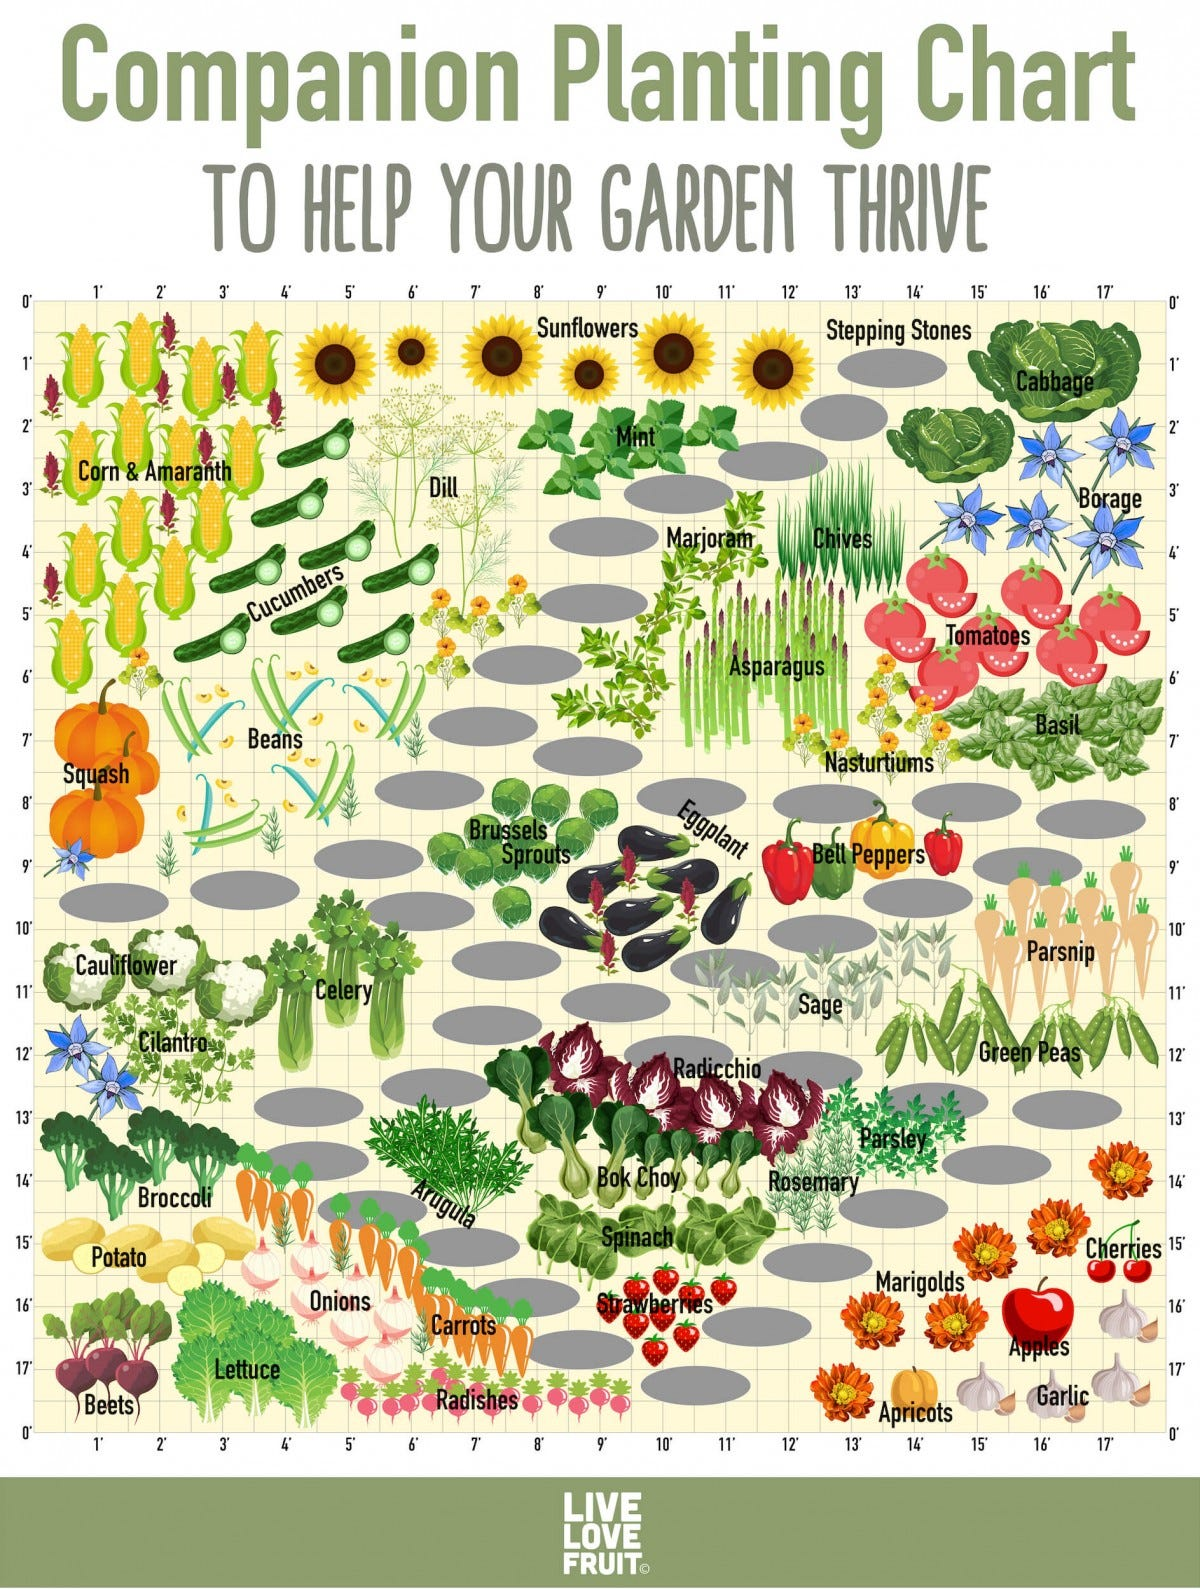 A companion planting chart showcasing how to plant compatible plants together.